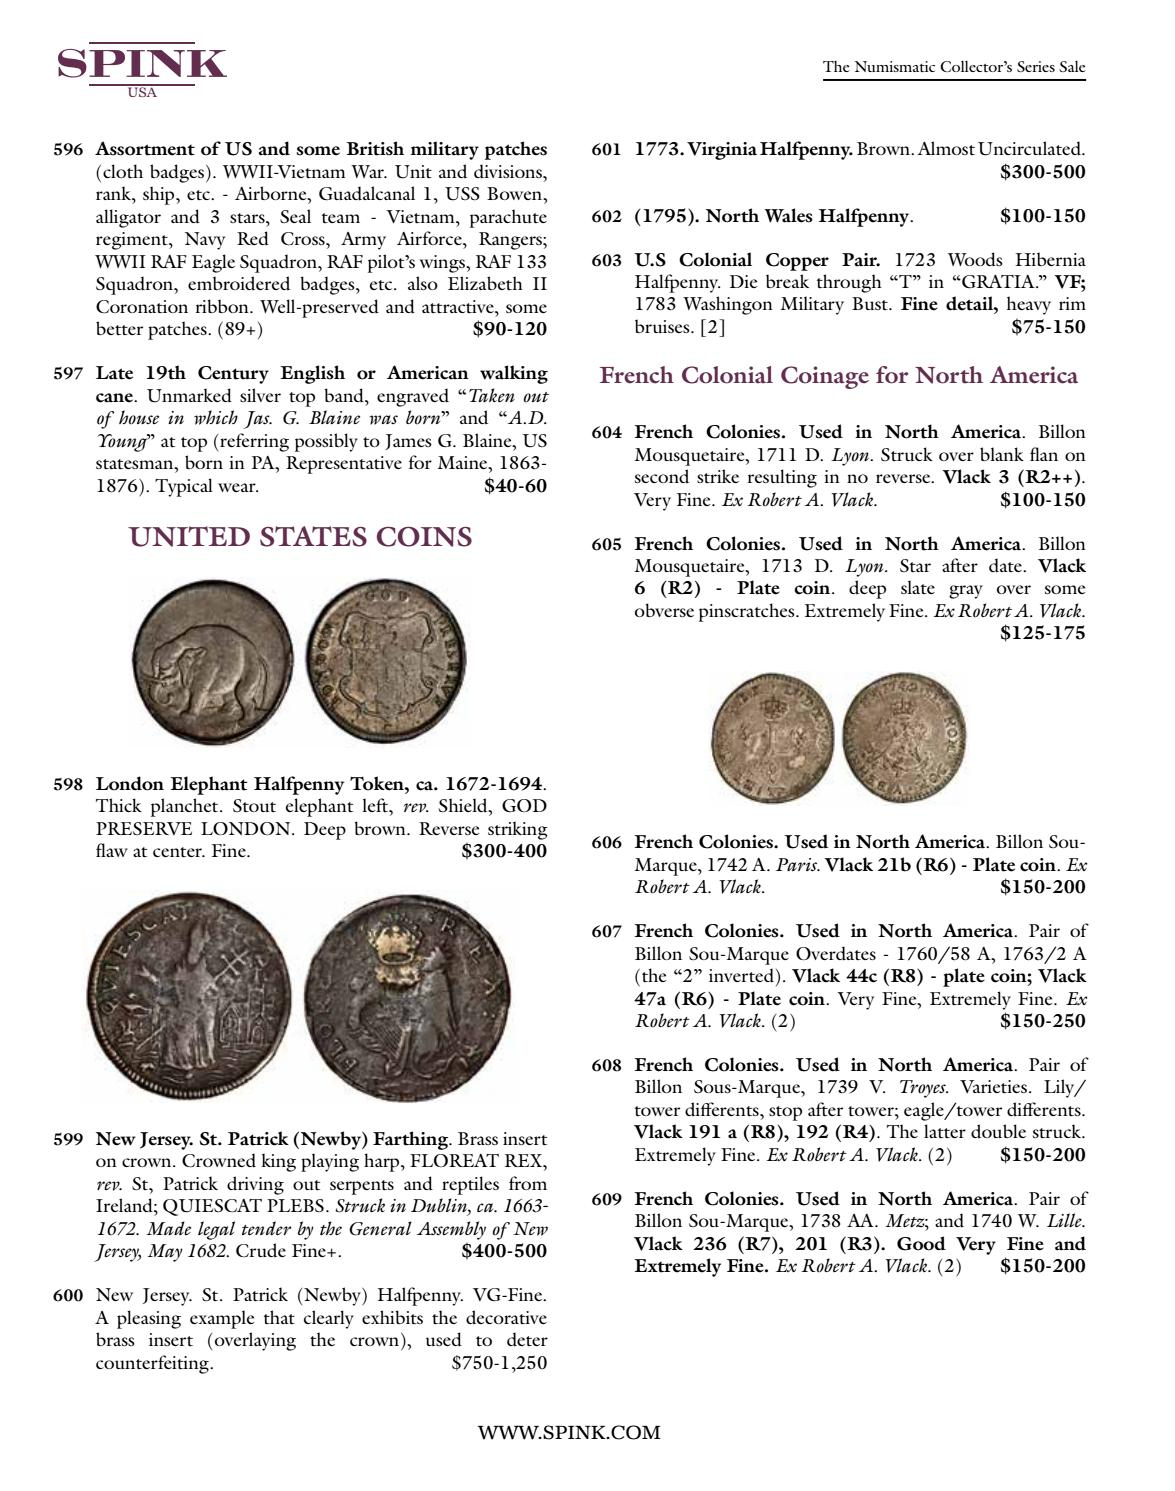 326 - The Numismatic Collector's Series Sale by Spink and Son - issuu